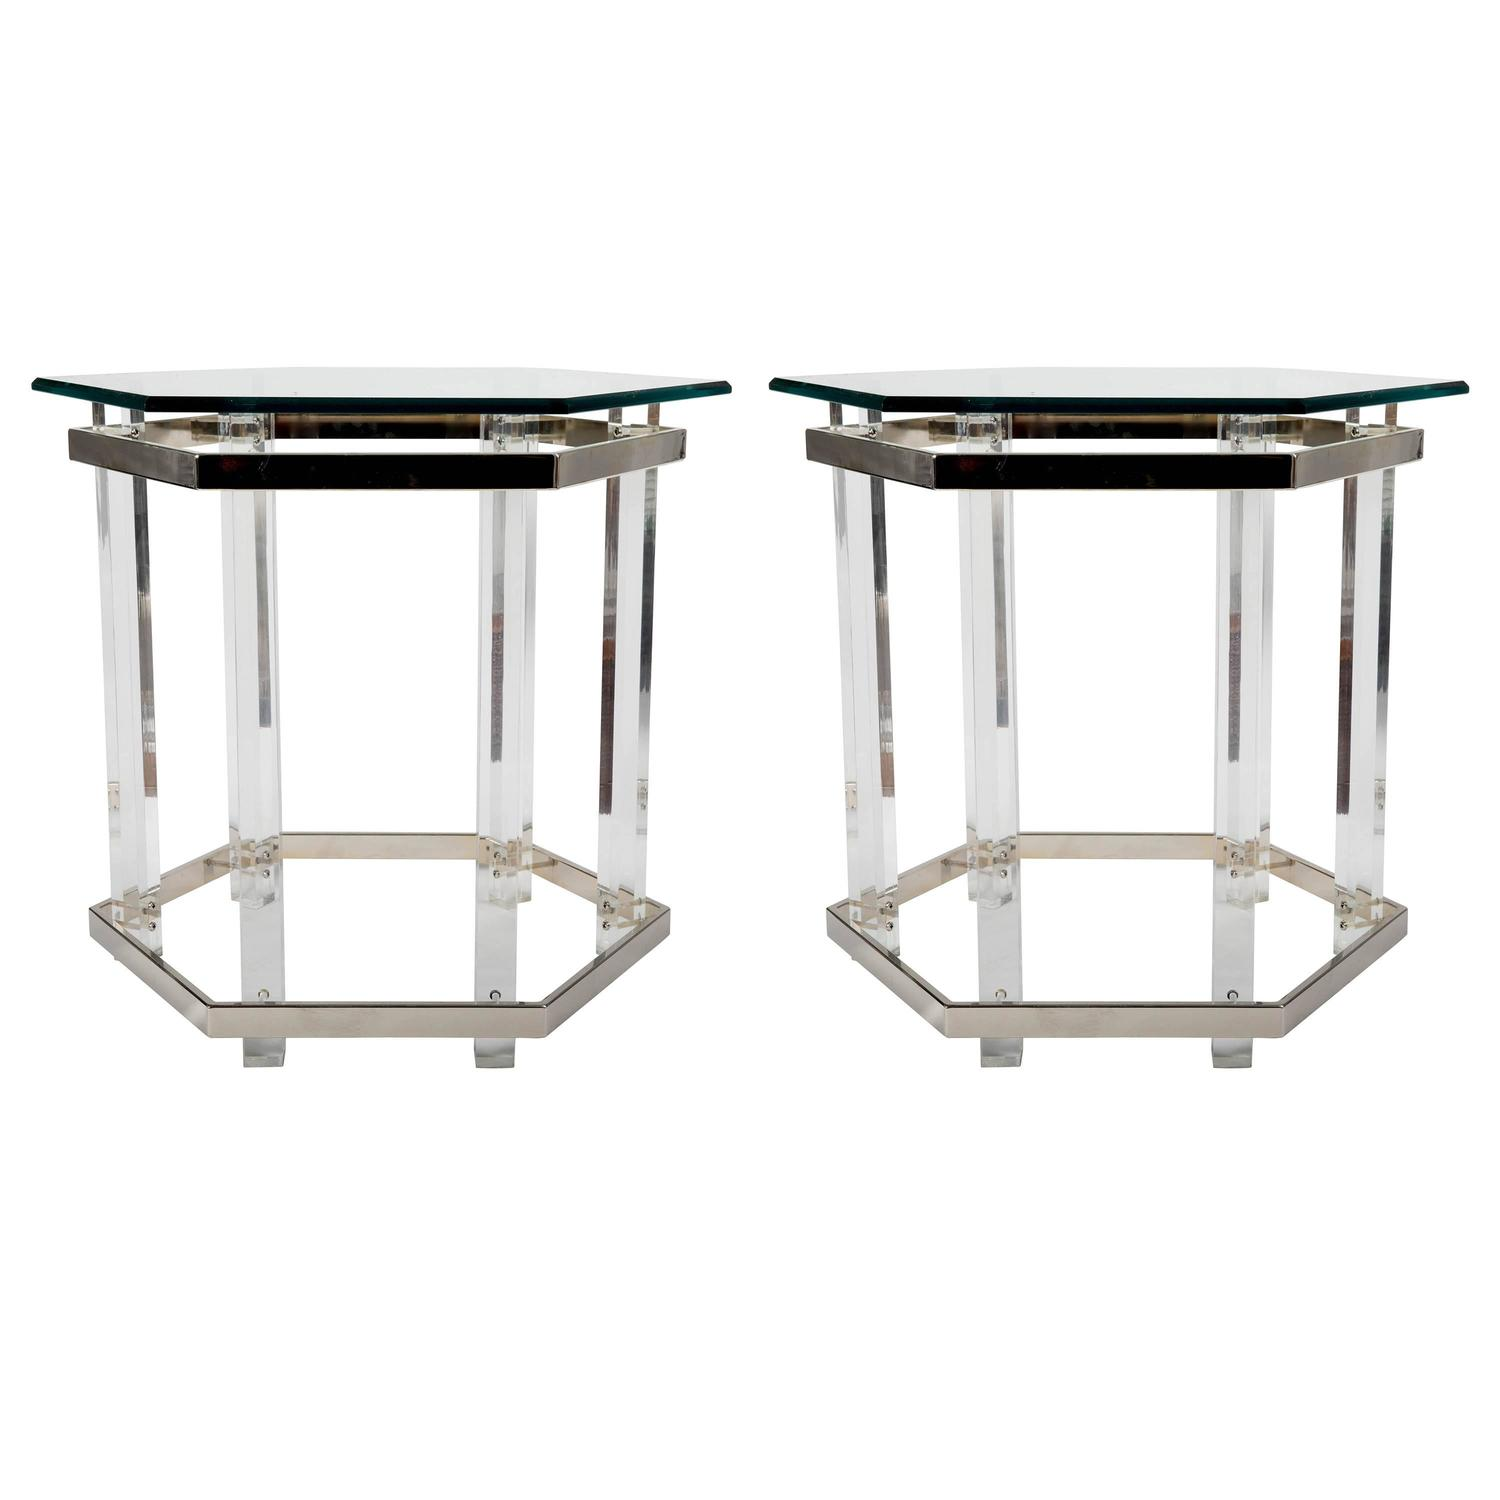 Pair Of Chrome And Lucite Glass Top Tables In Hexagonal Form For Sale At 1stdibs